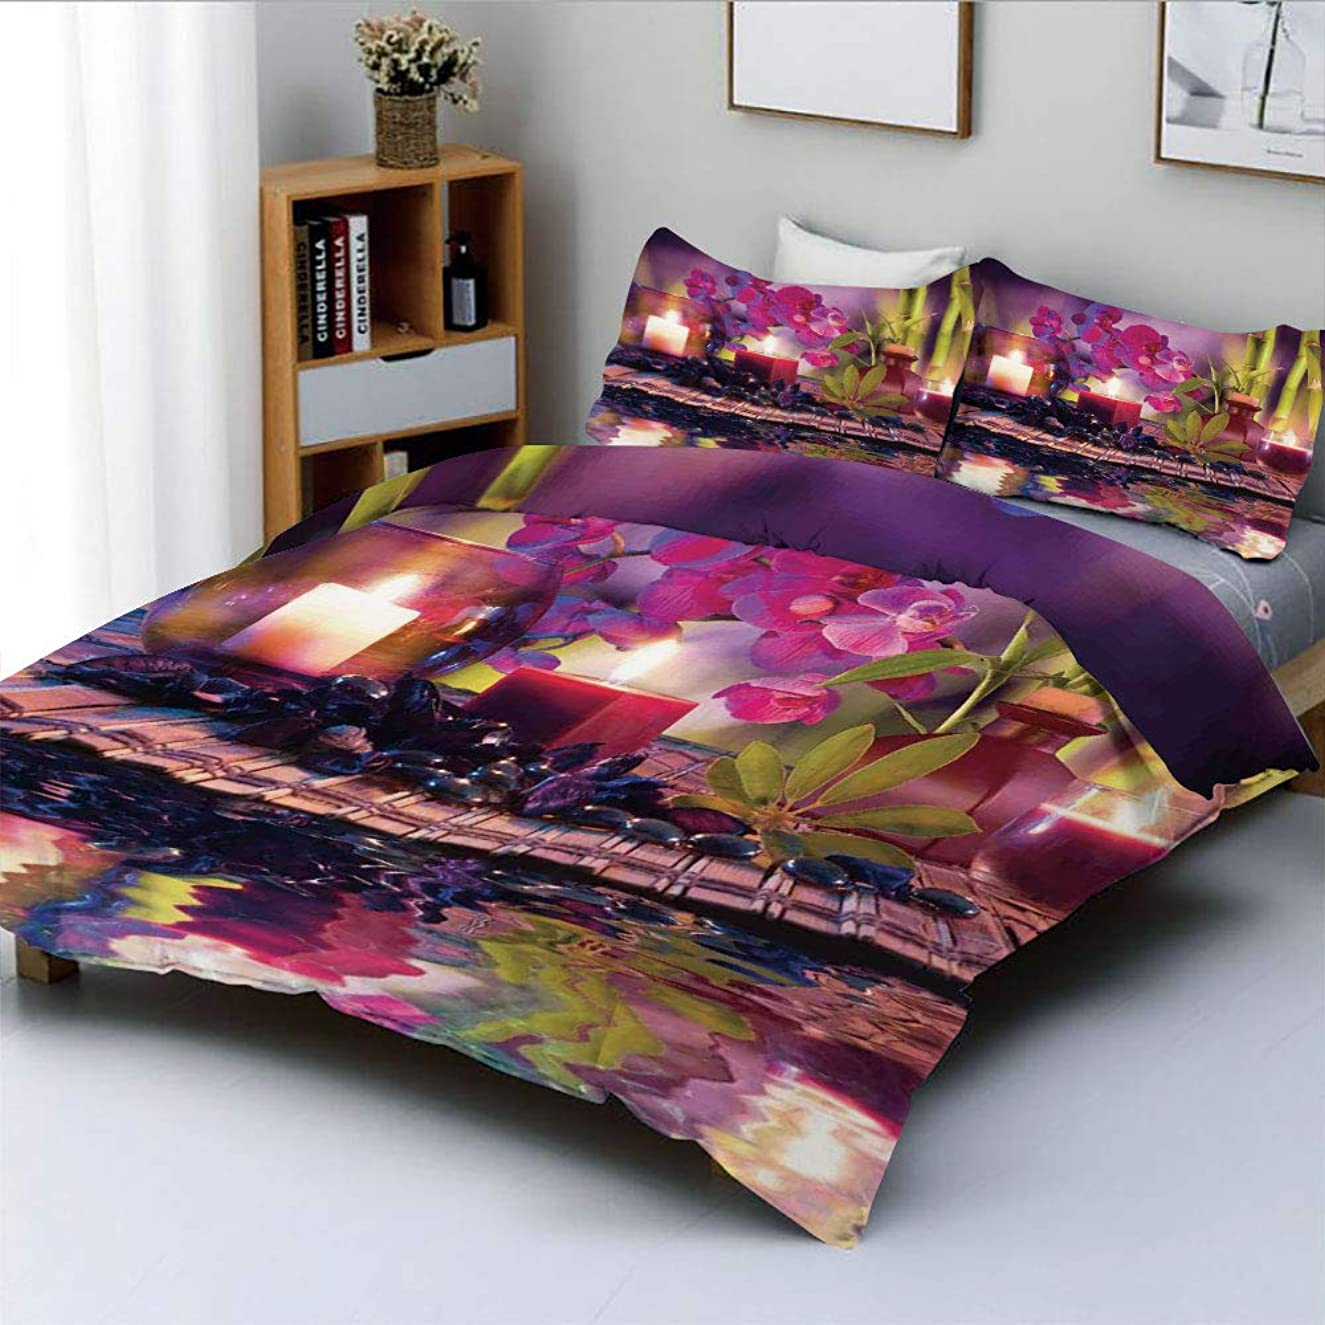 Duplex Print Duvet Cover Set King Size,Violet Composition Candles Oil Orchids and Bamboo on Water Natural LeavesDecorative 3 Piece Bedding Set with 2 Pillow Sham,Best Gift for Kids & Adult